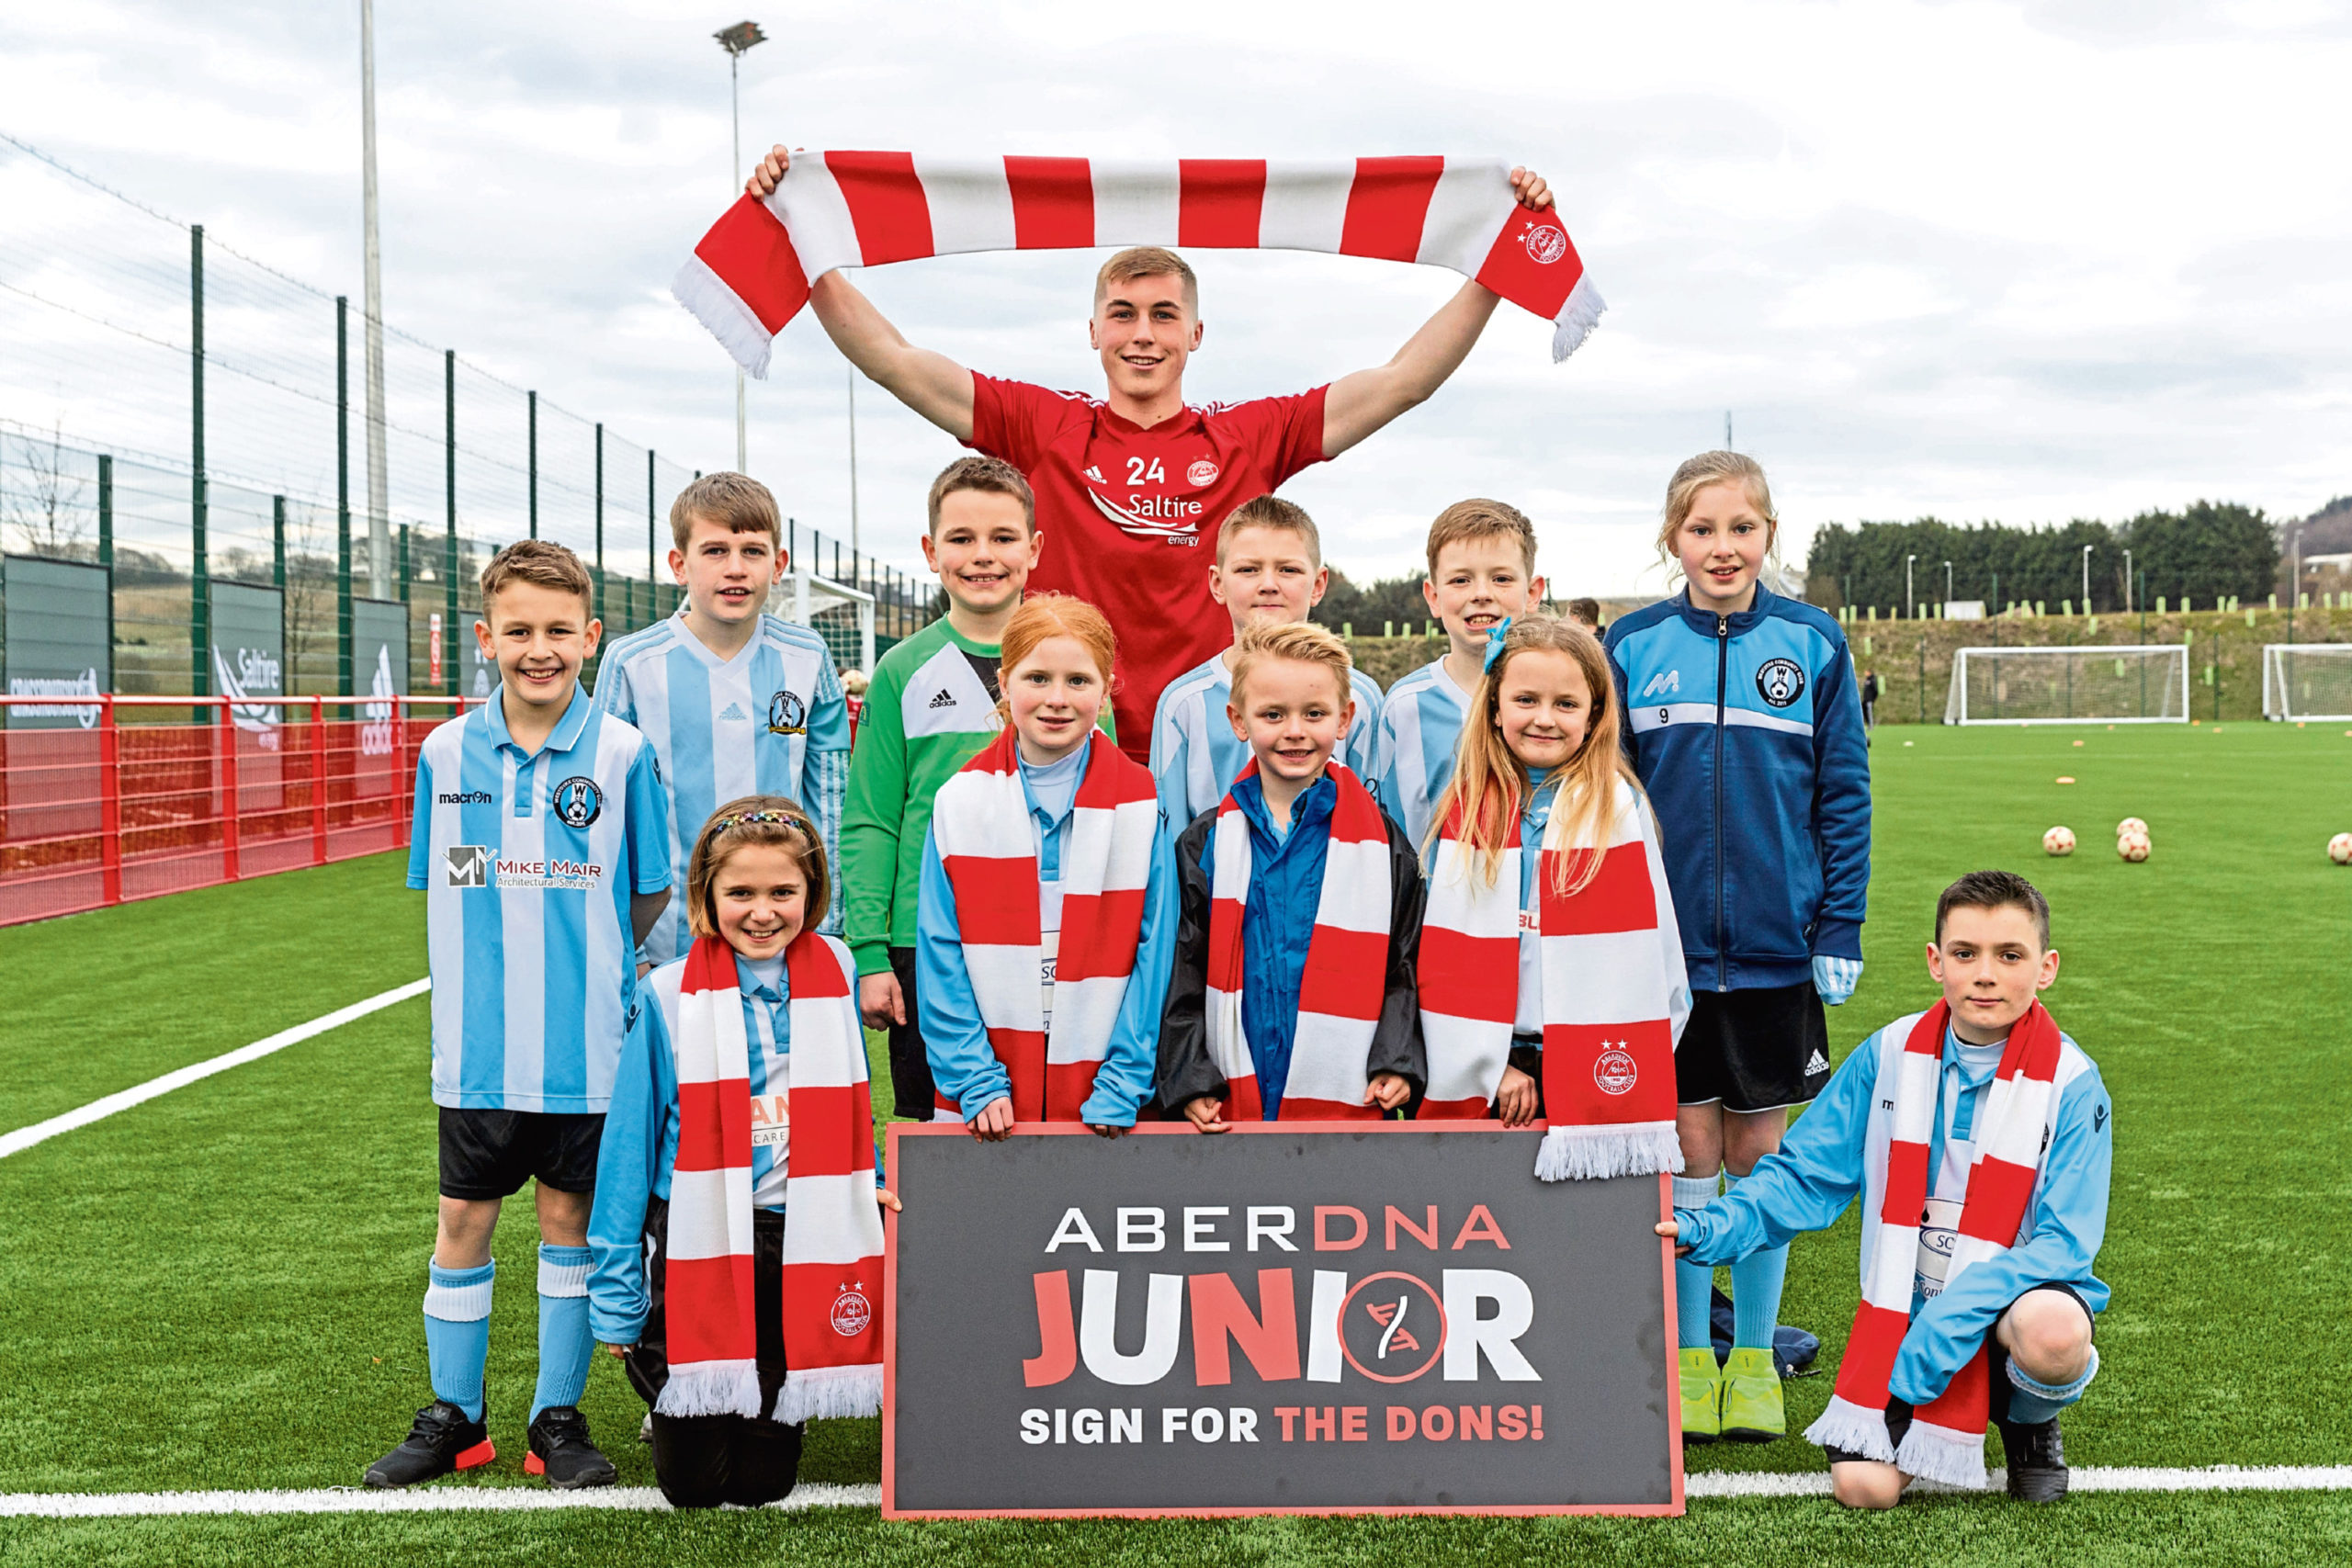 Dean Campbell launches the AberDNA Junior campaign with a little help from some young Dons in the city.